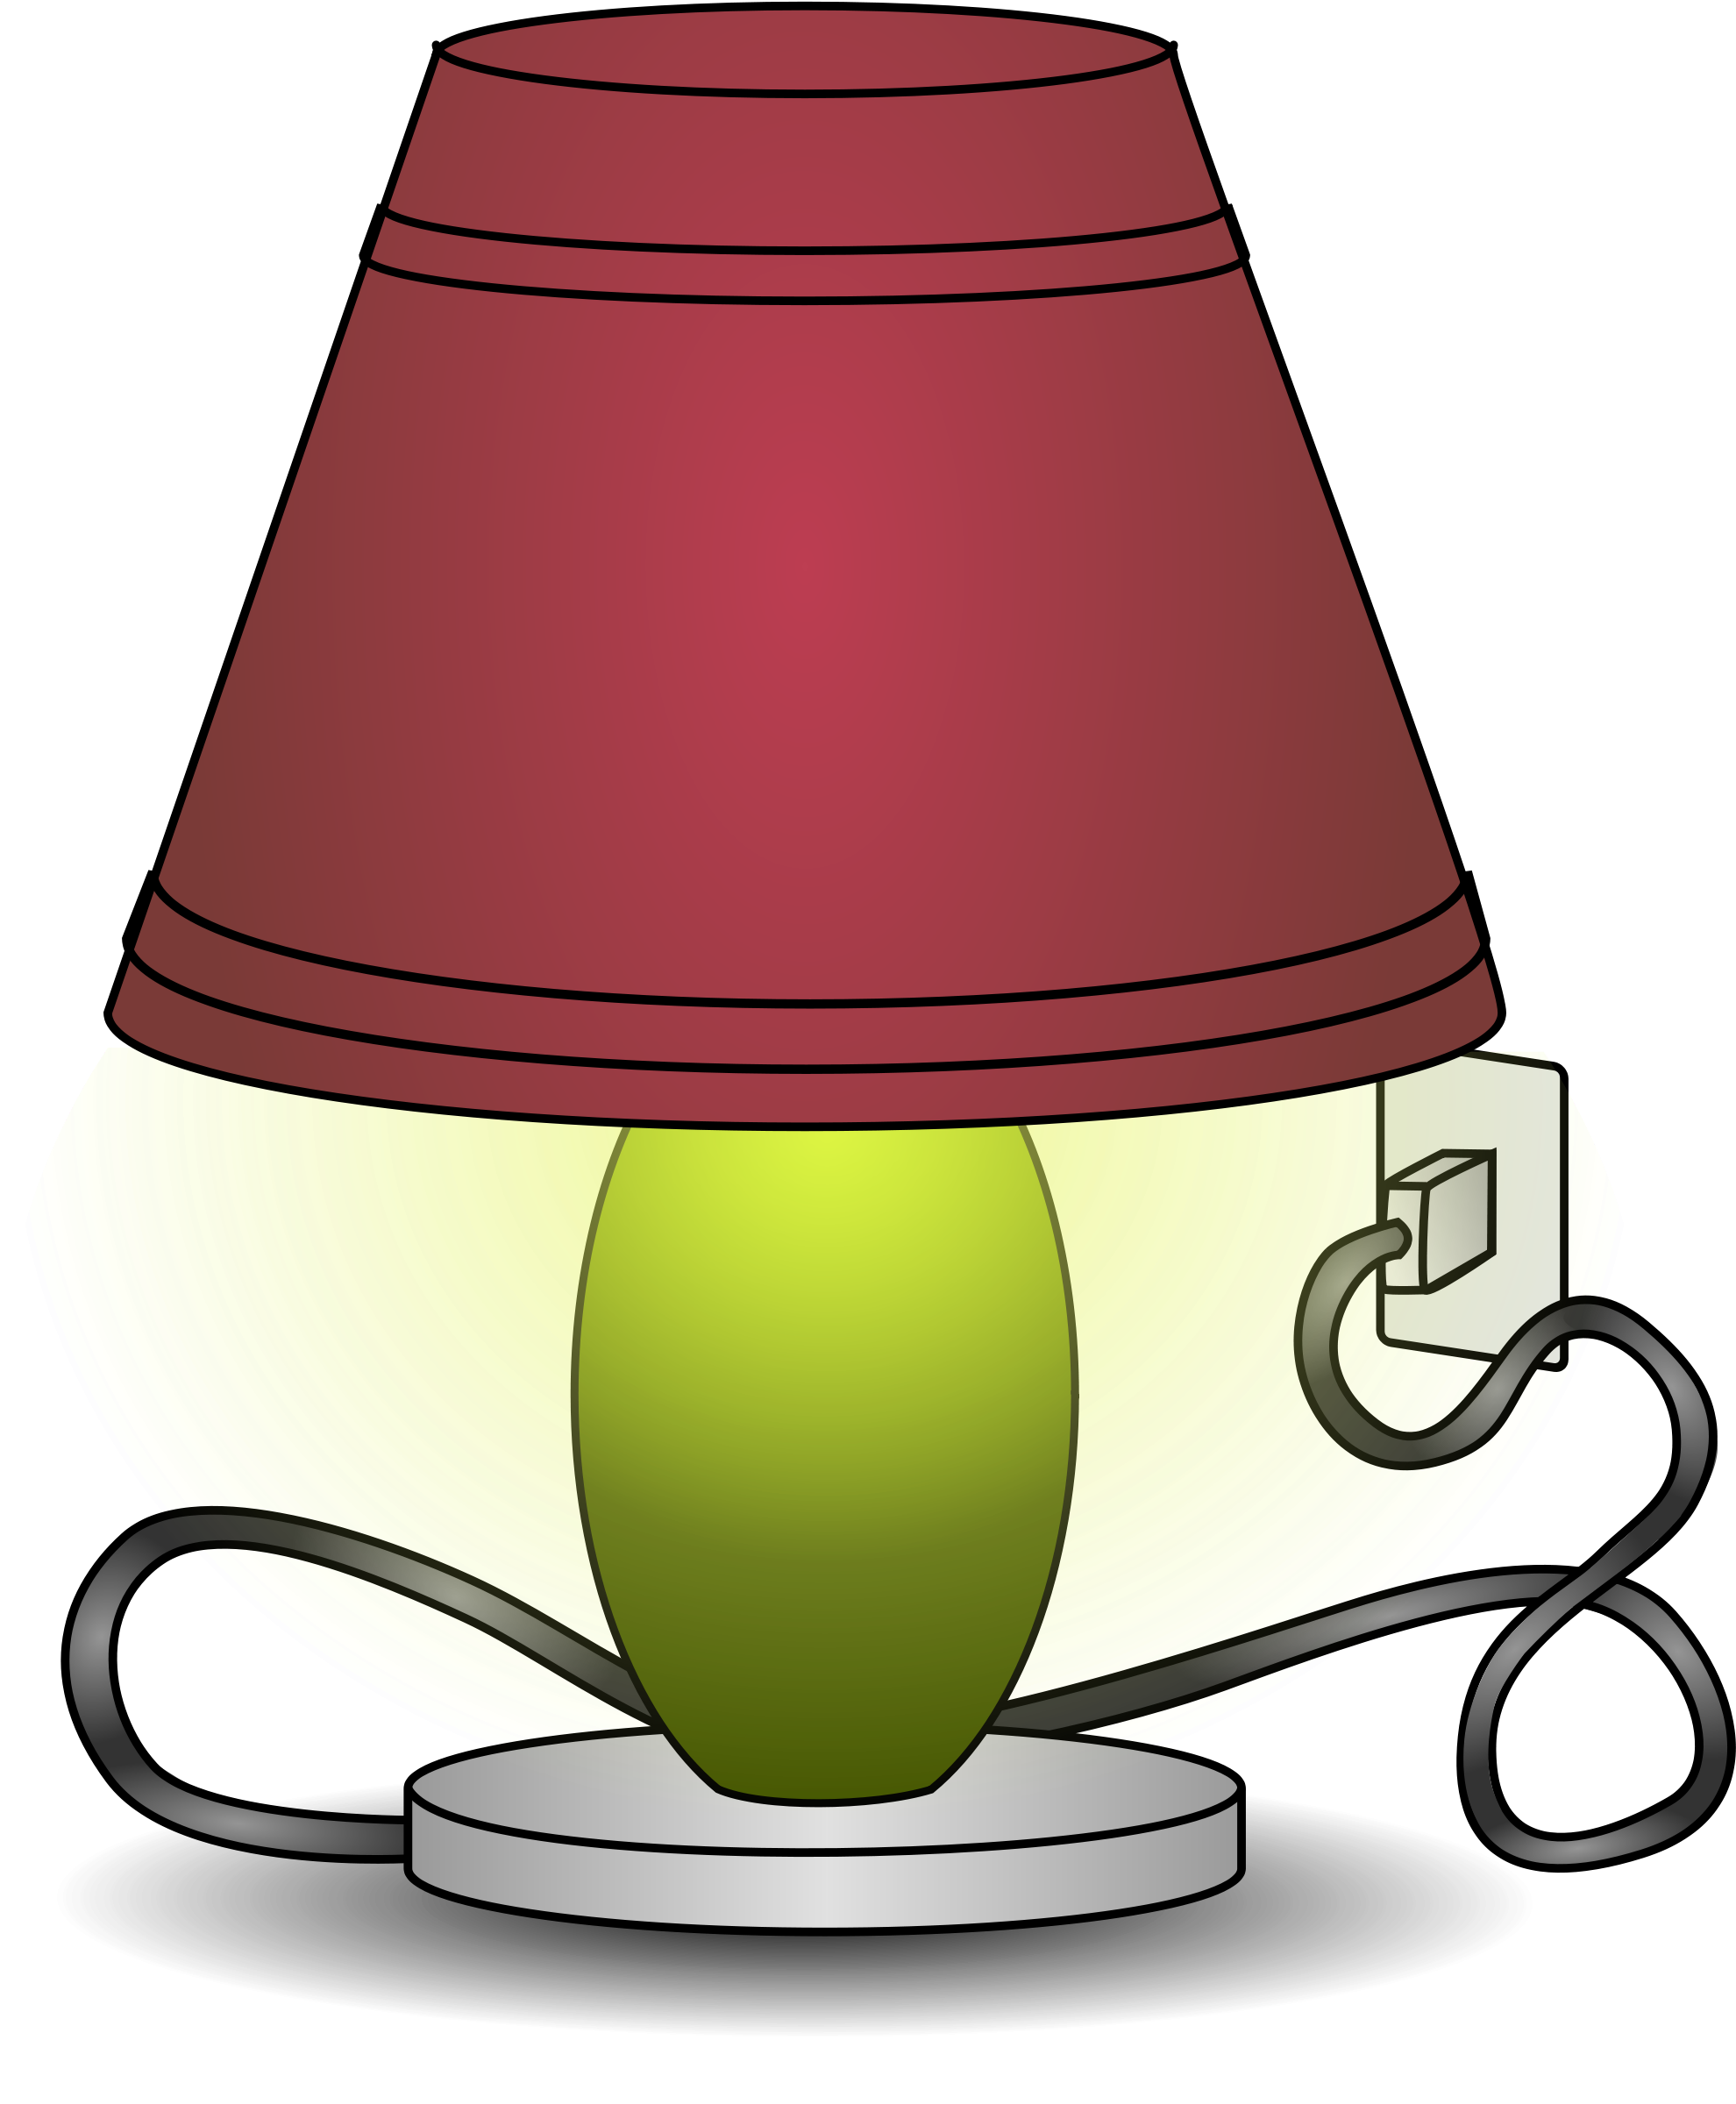 Lamp cliparts.